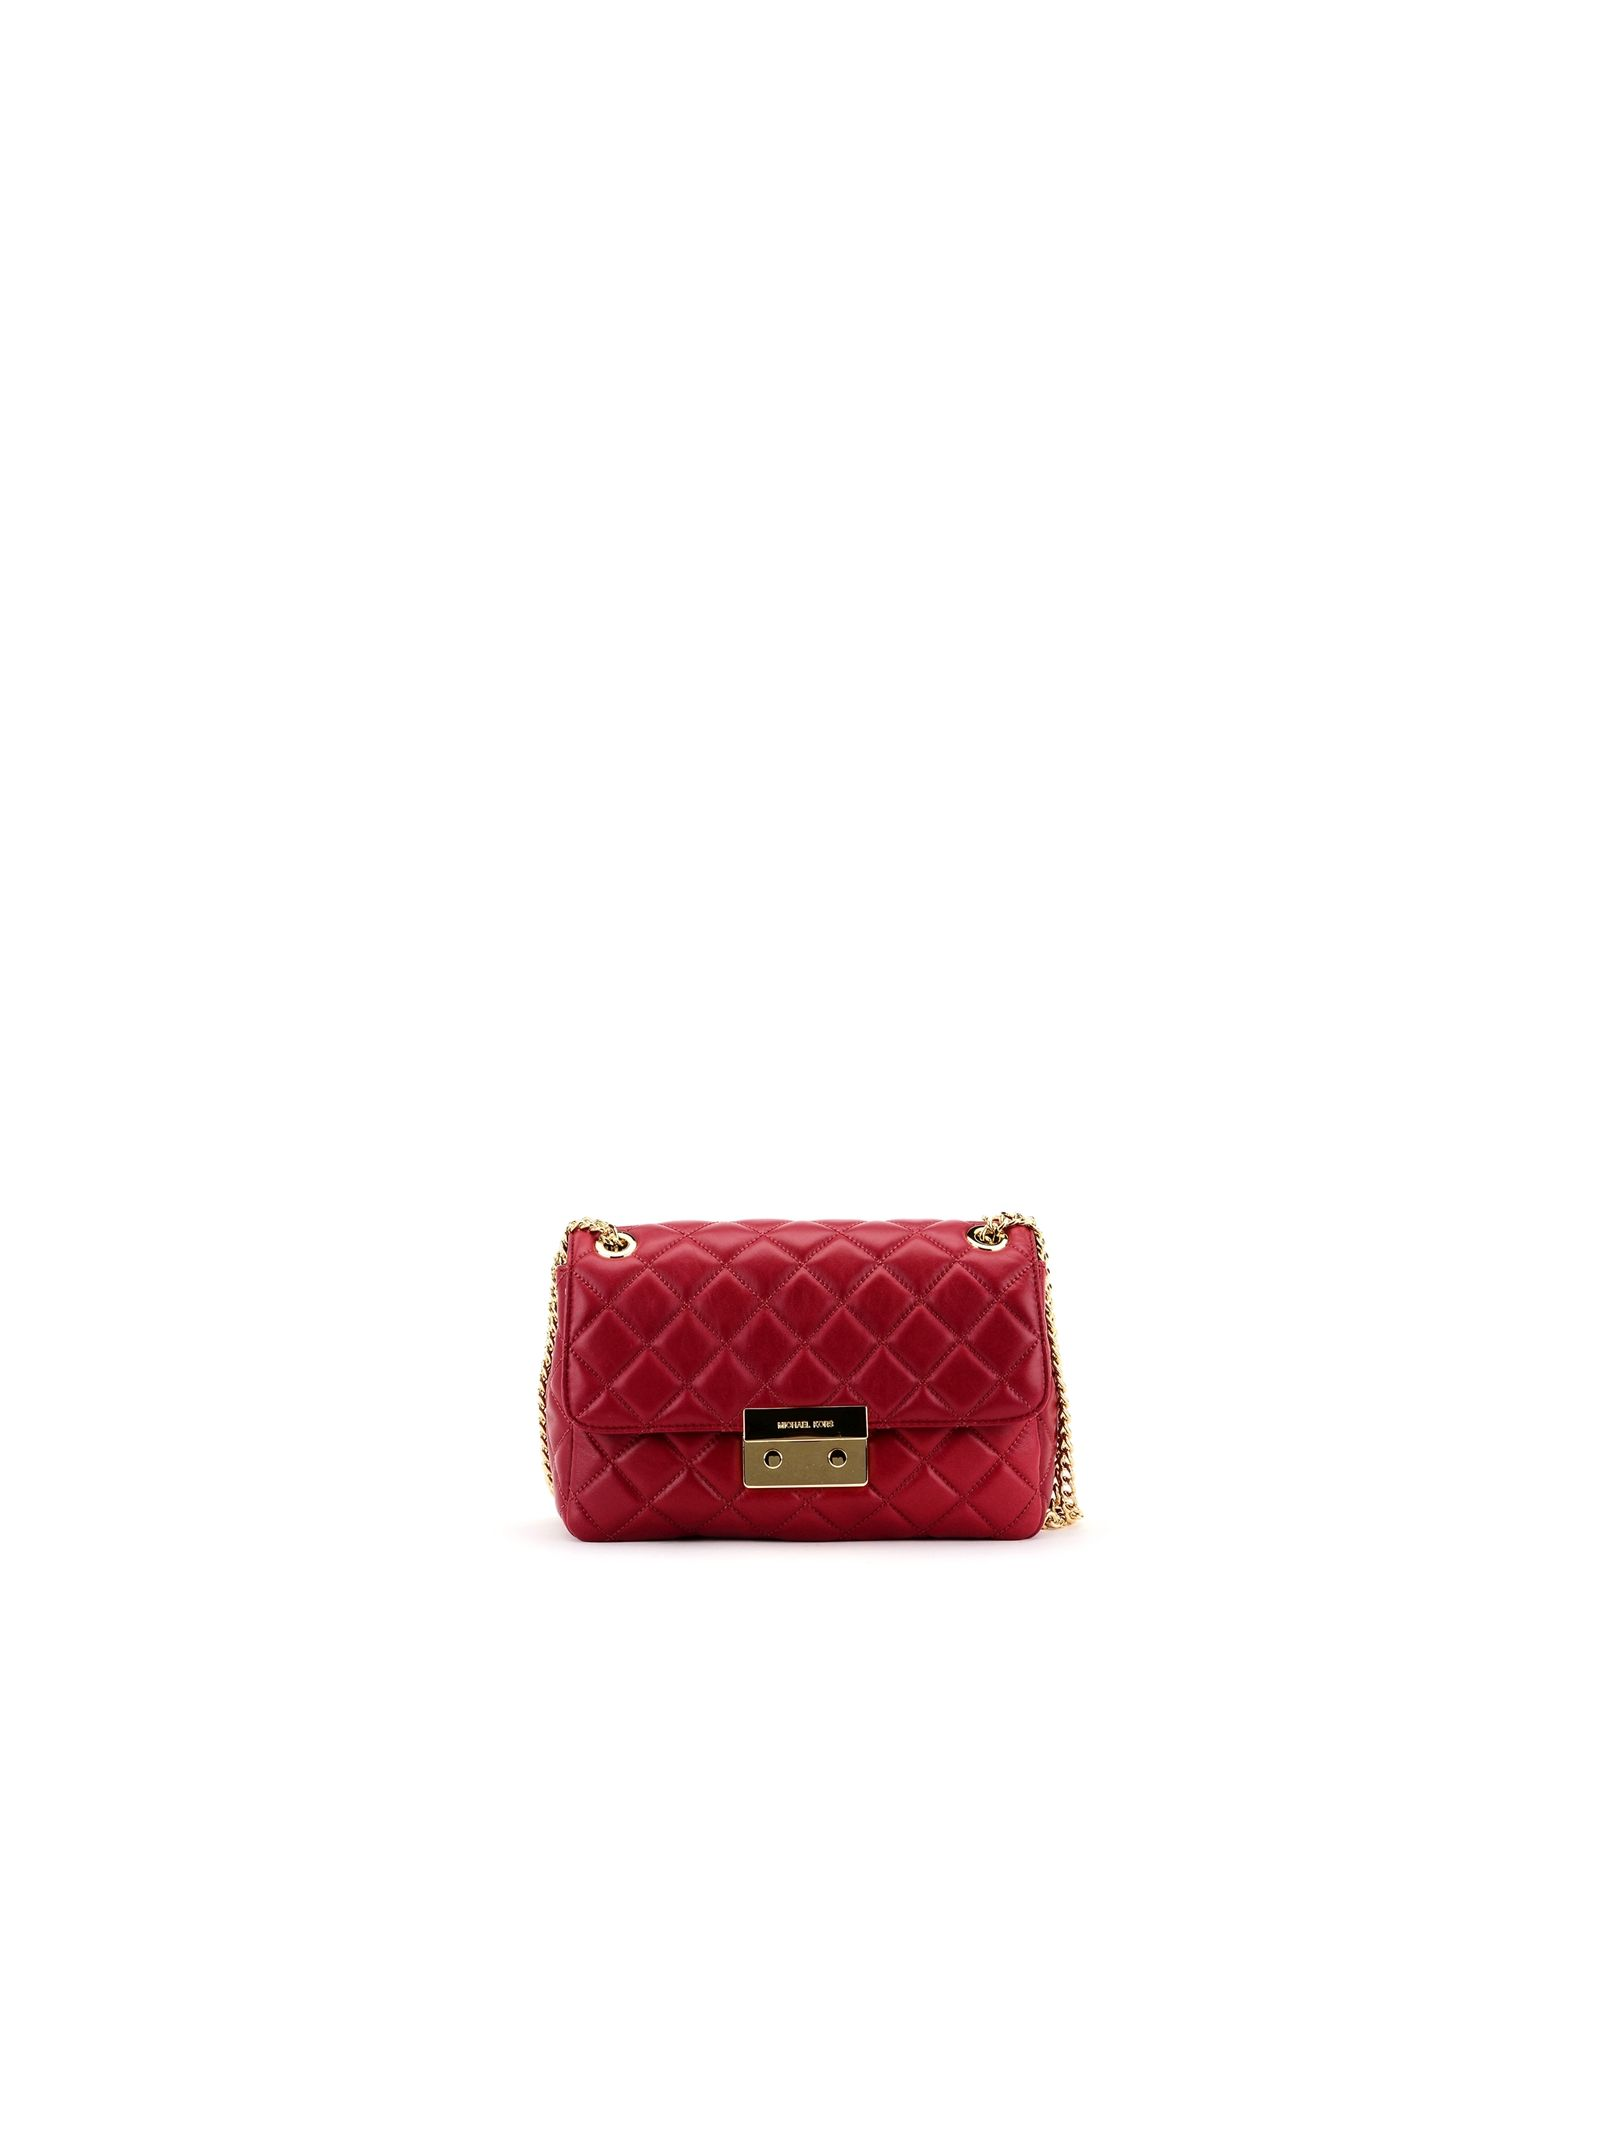 michael kors female cherry sloan crossbody